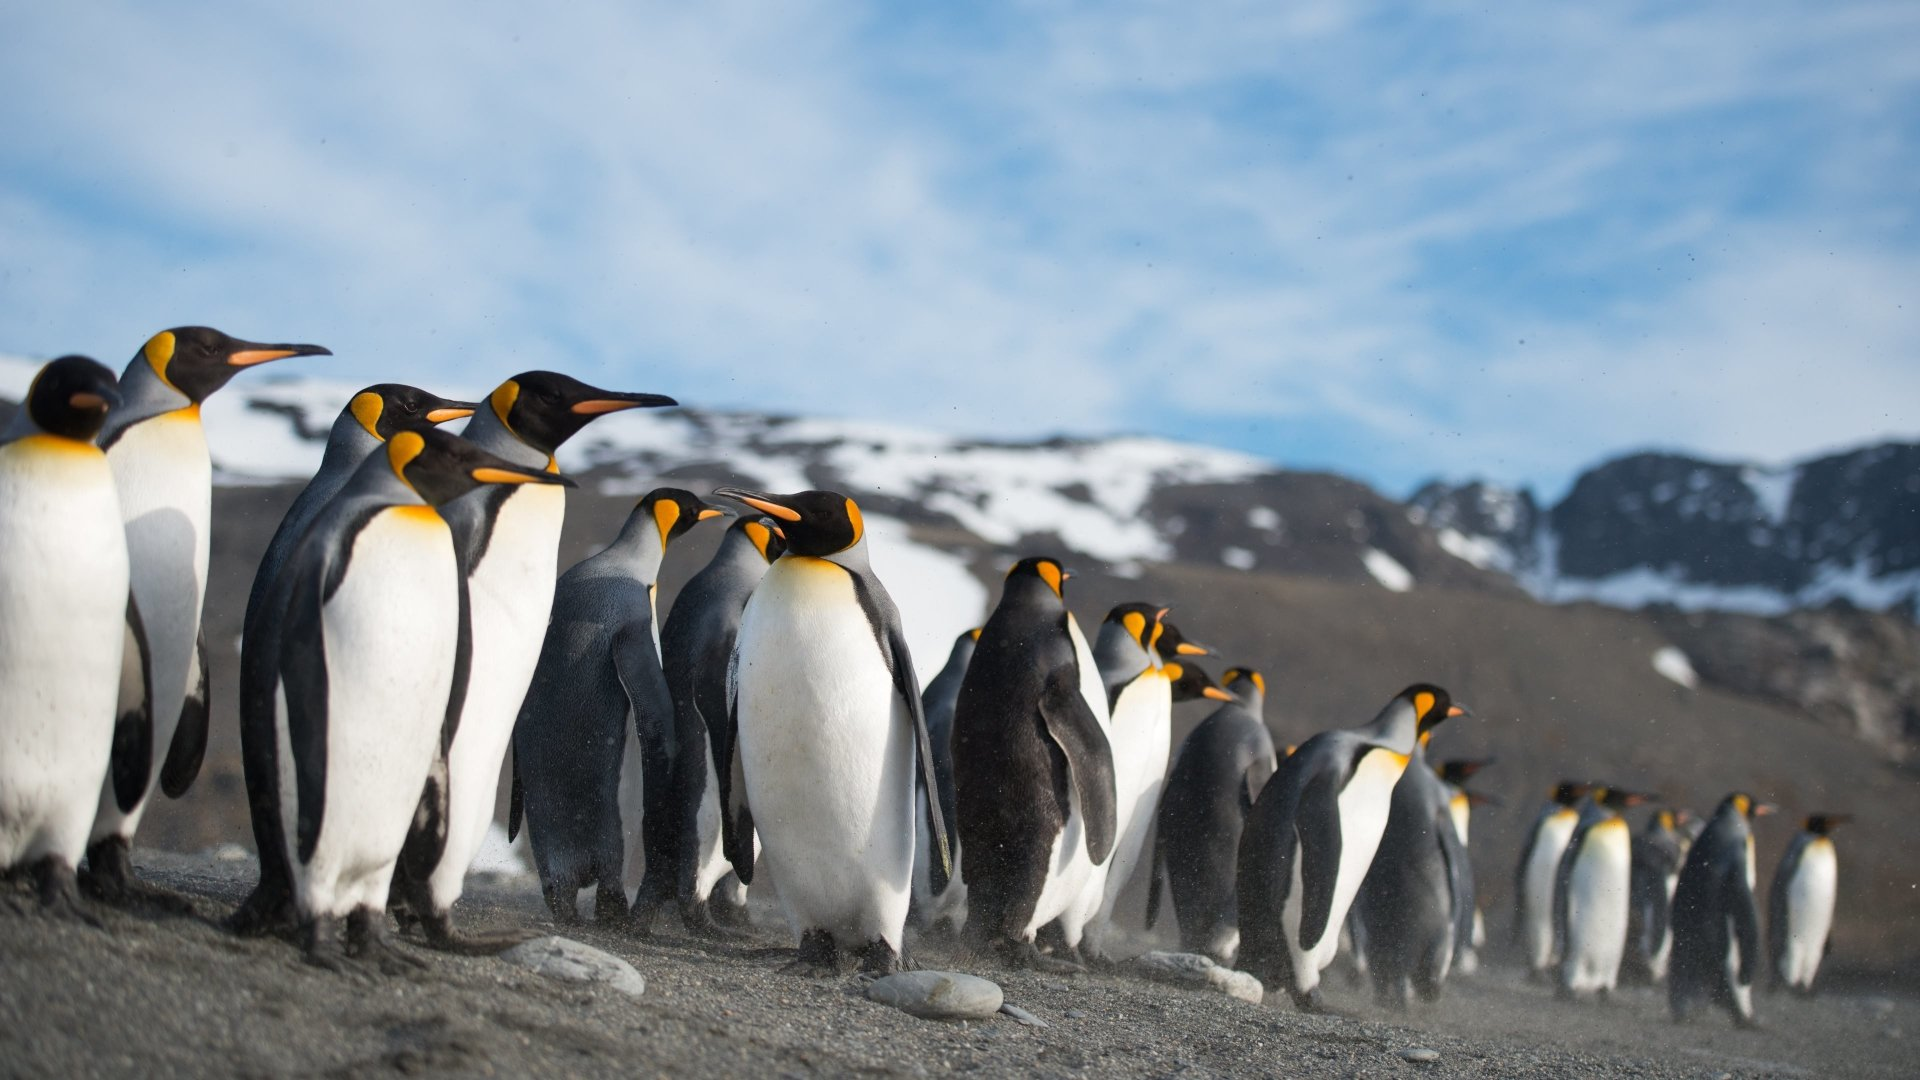 16 4K Ultra HD Penguin Wallpapers Background Images   Wallpaper 1920x1080